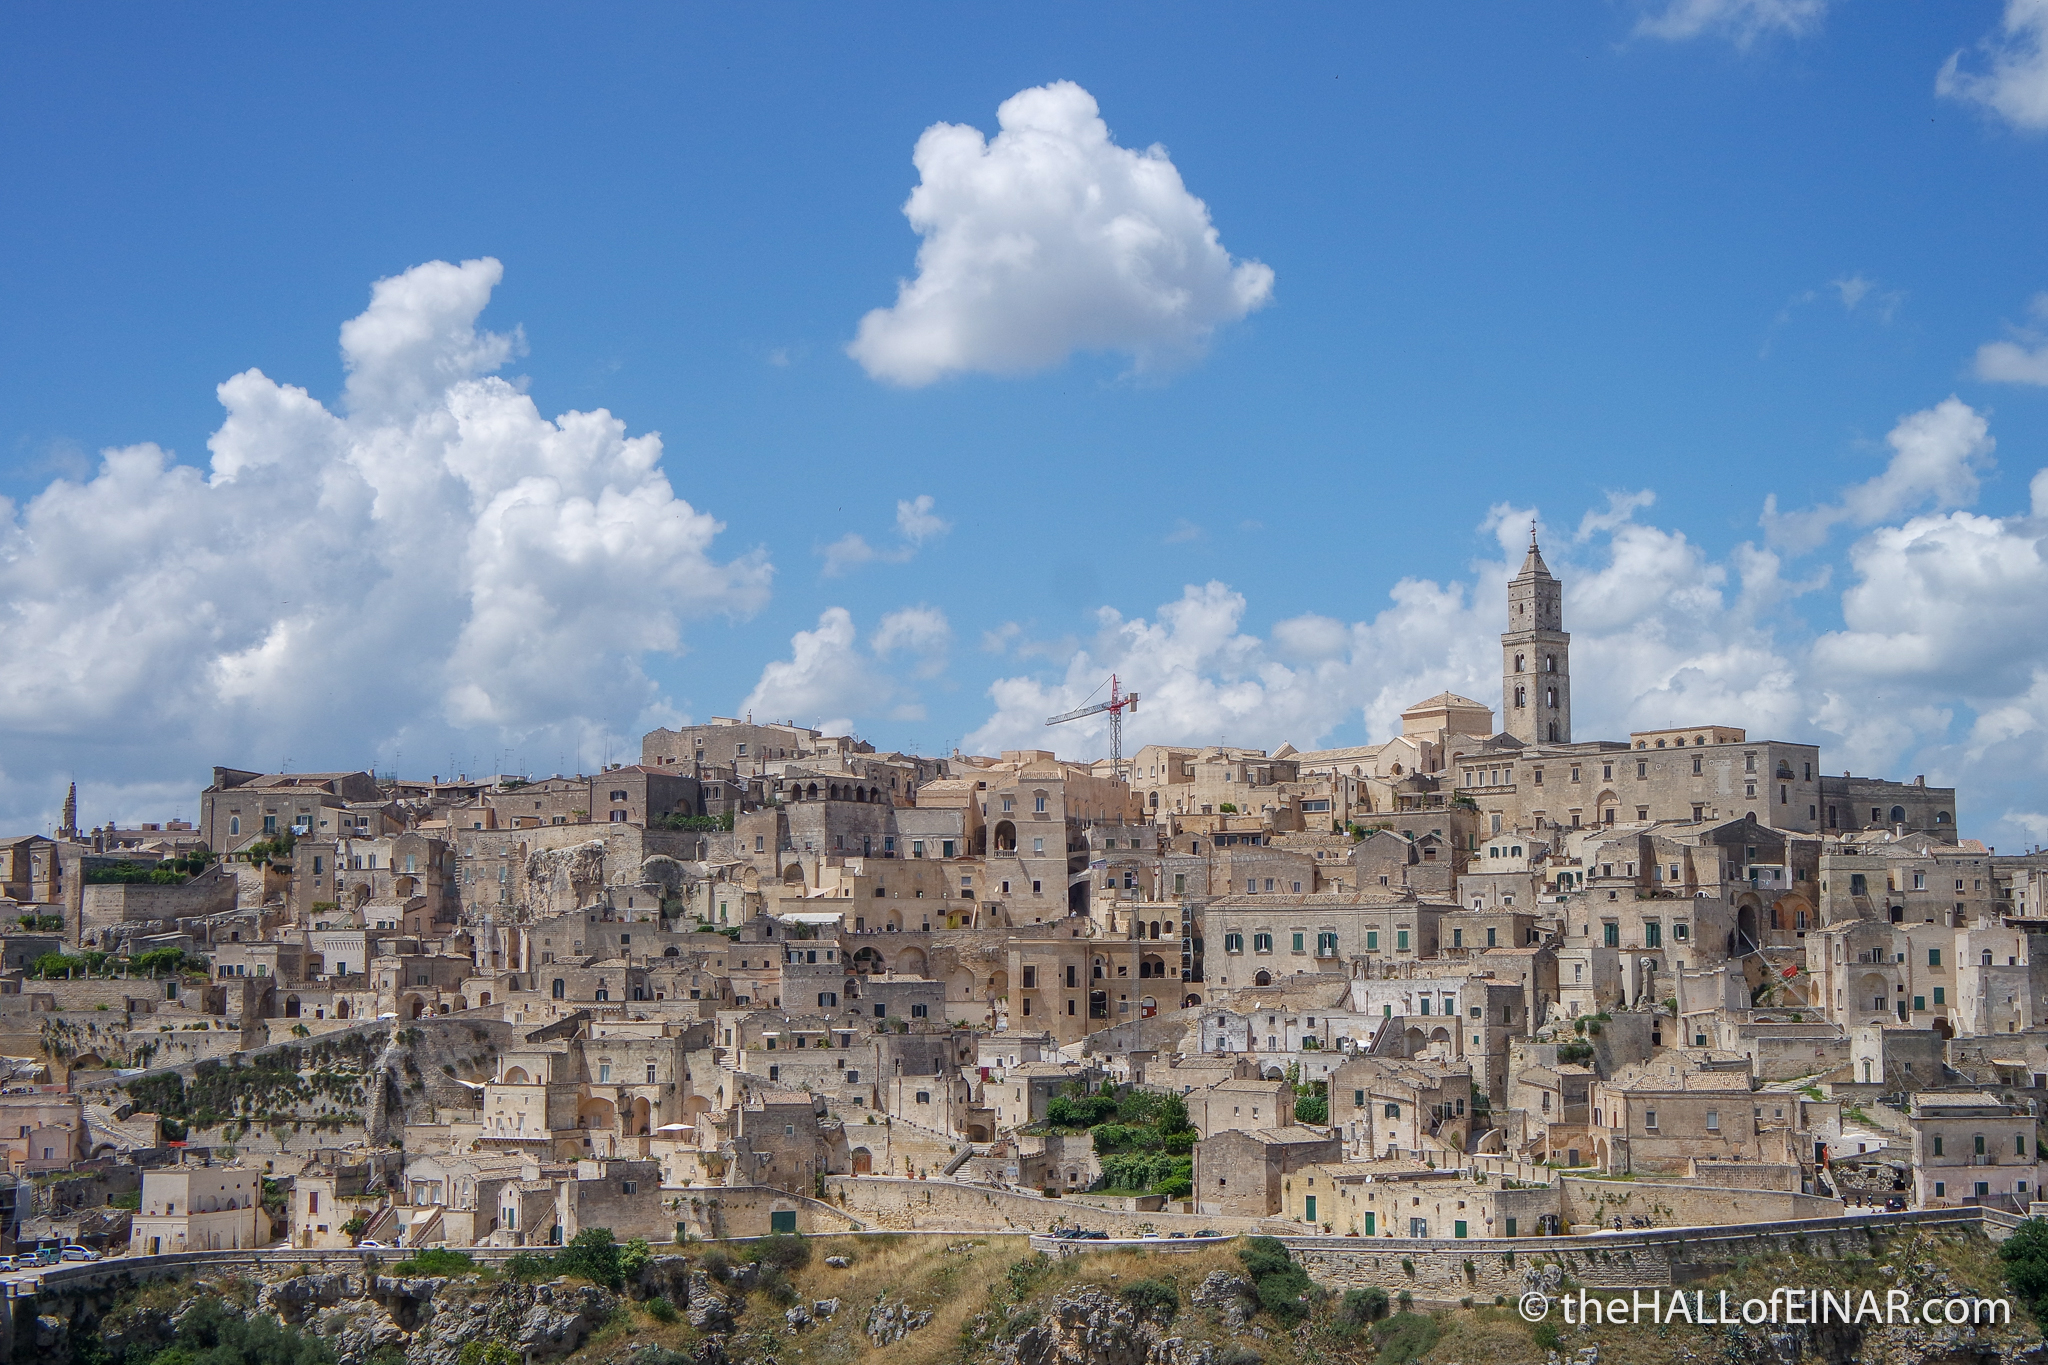 Giant Fennel - Matera - The Hall of Einar - photograph (c) David Bailey (not the)